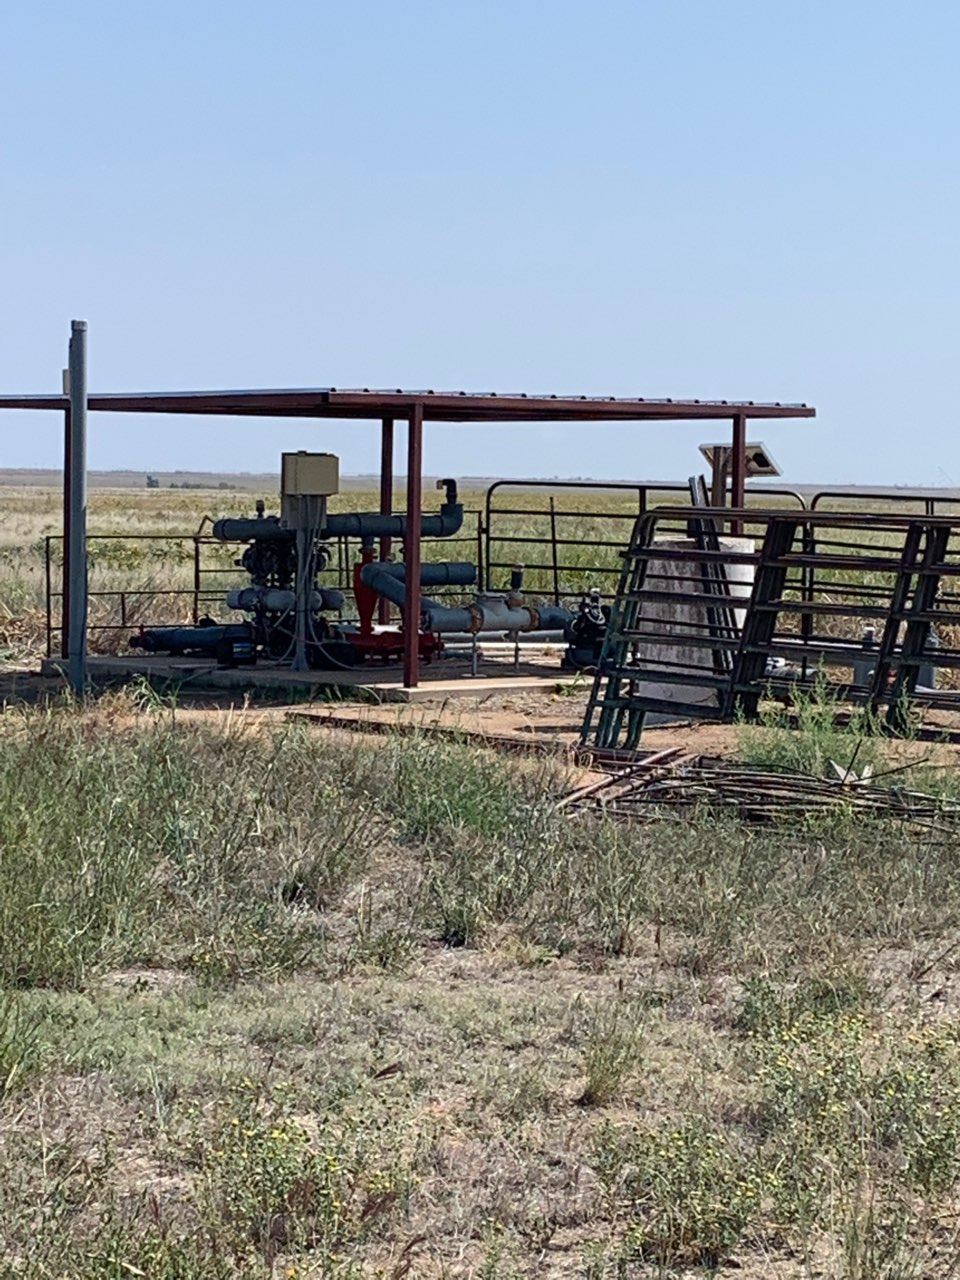 Steel barn equipment and gates in a field